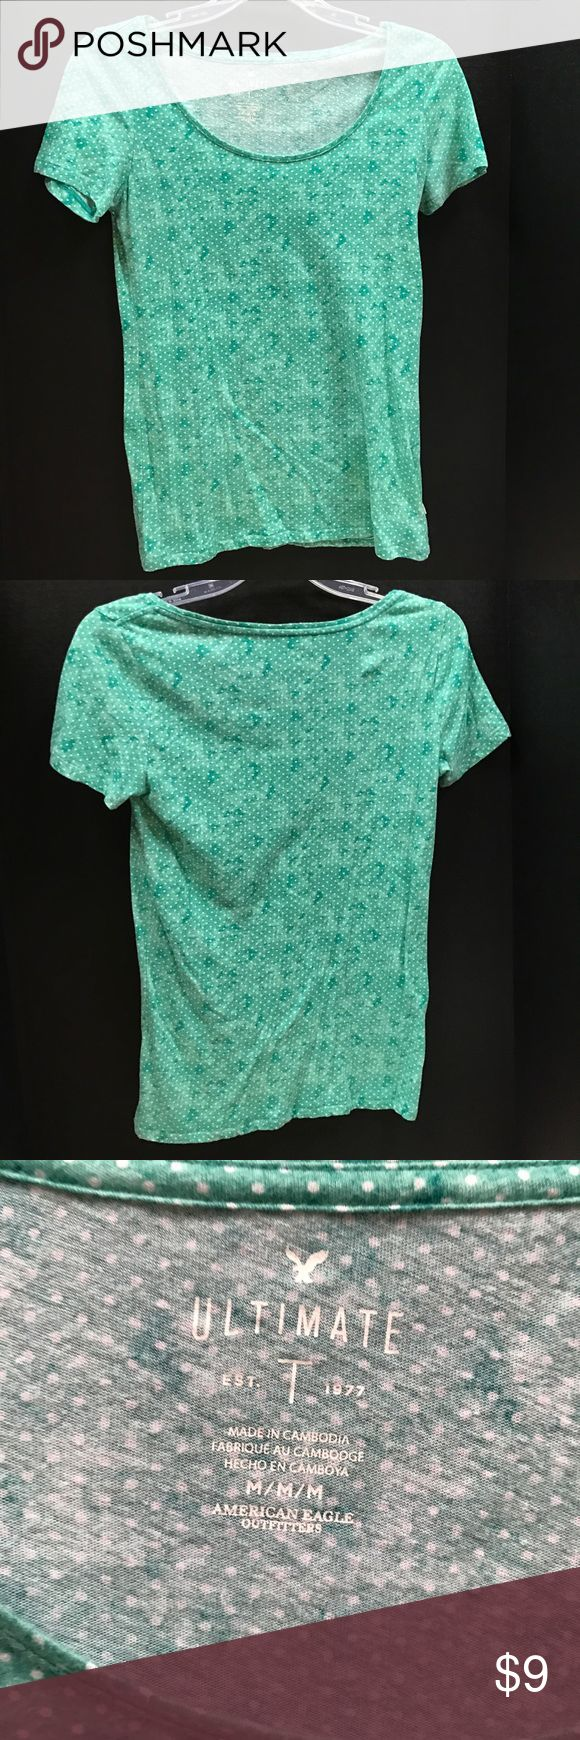 American Eagle Polka Dot Shirt This green shirt with white polka dots is by American Eagle. There are no problems with the garment. Feel free to make an offer or bundle! American Eagle Outfitters Tops Tees - Short Sleeve